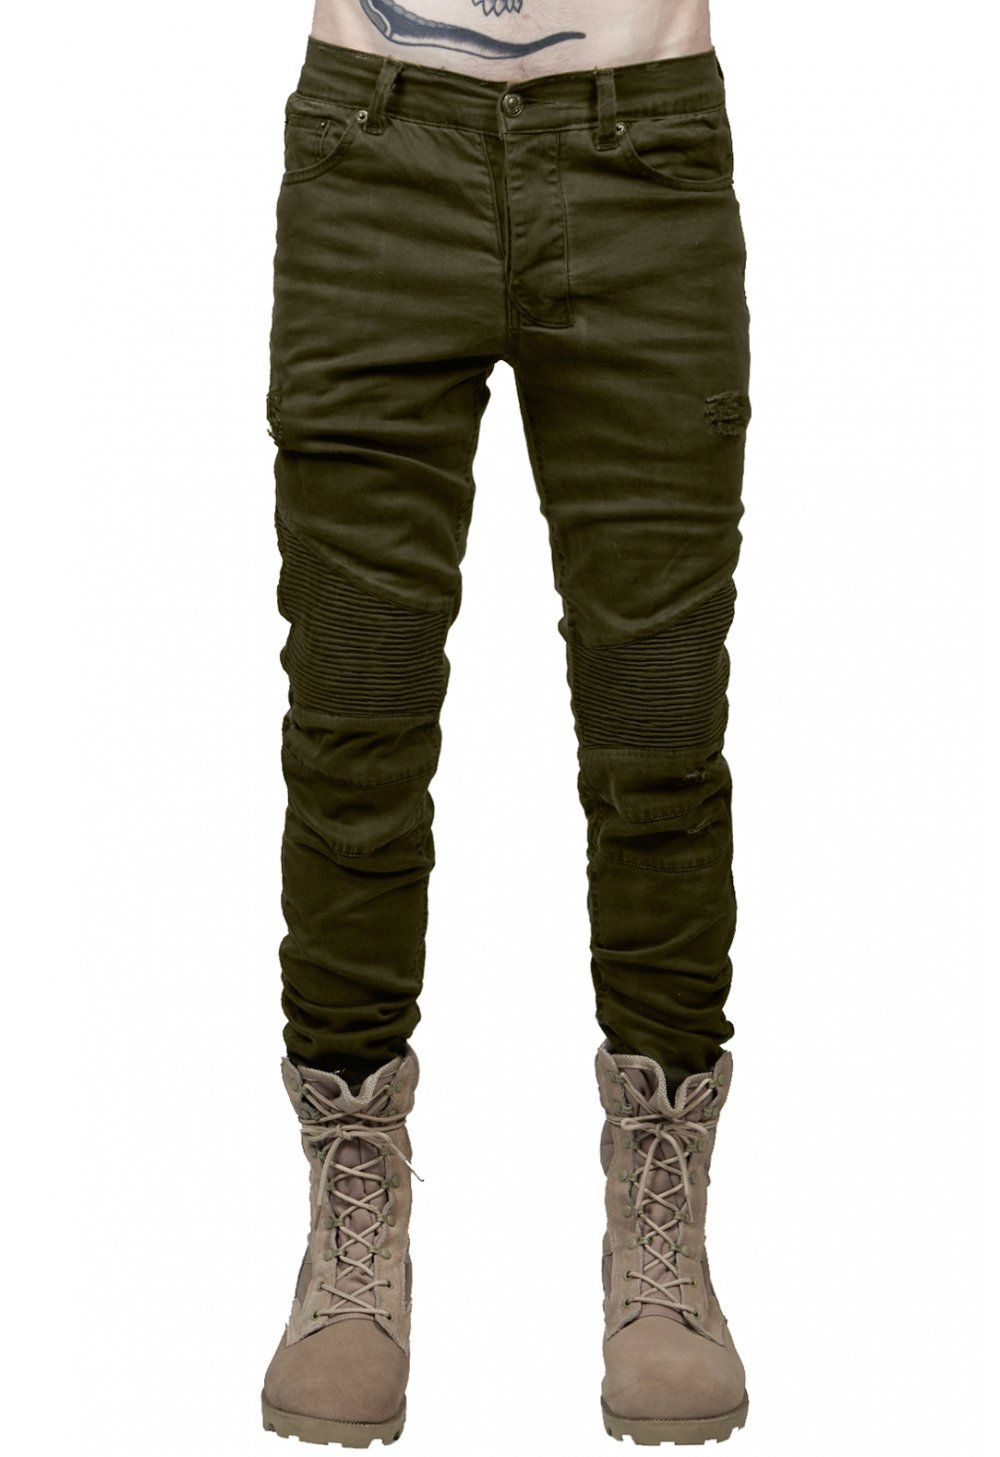 0aeecae96bd Distressed Biker Jeans   Olive - from Other UK Clothing Ltd UK ...